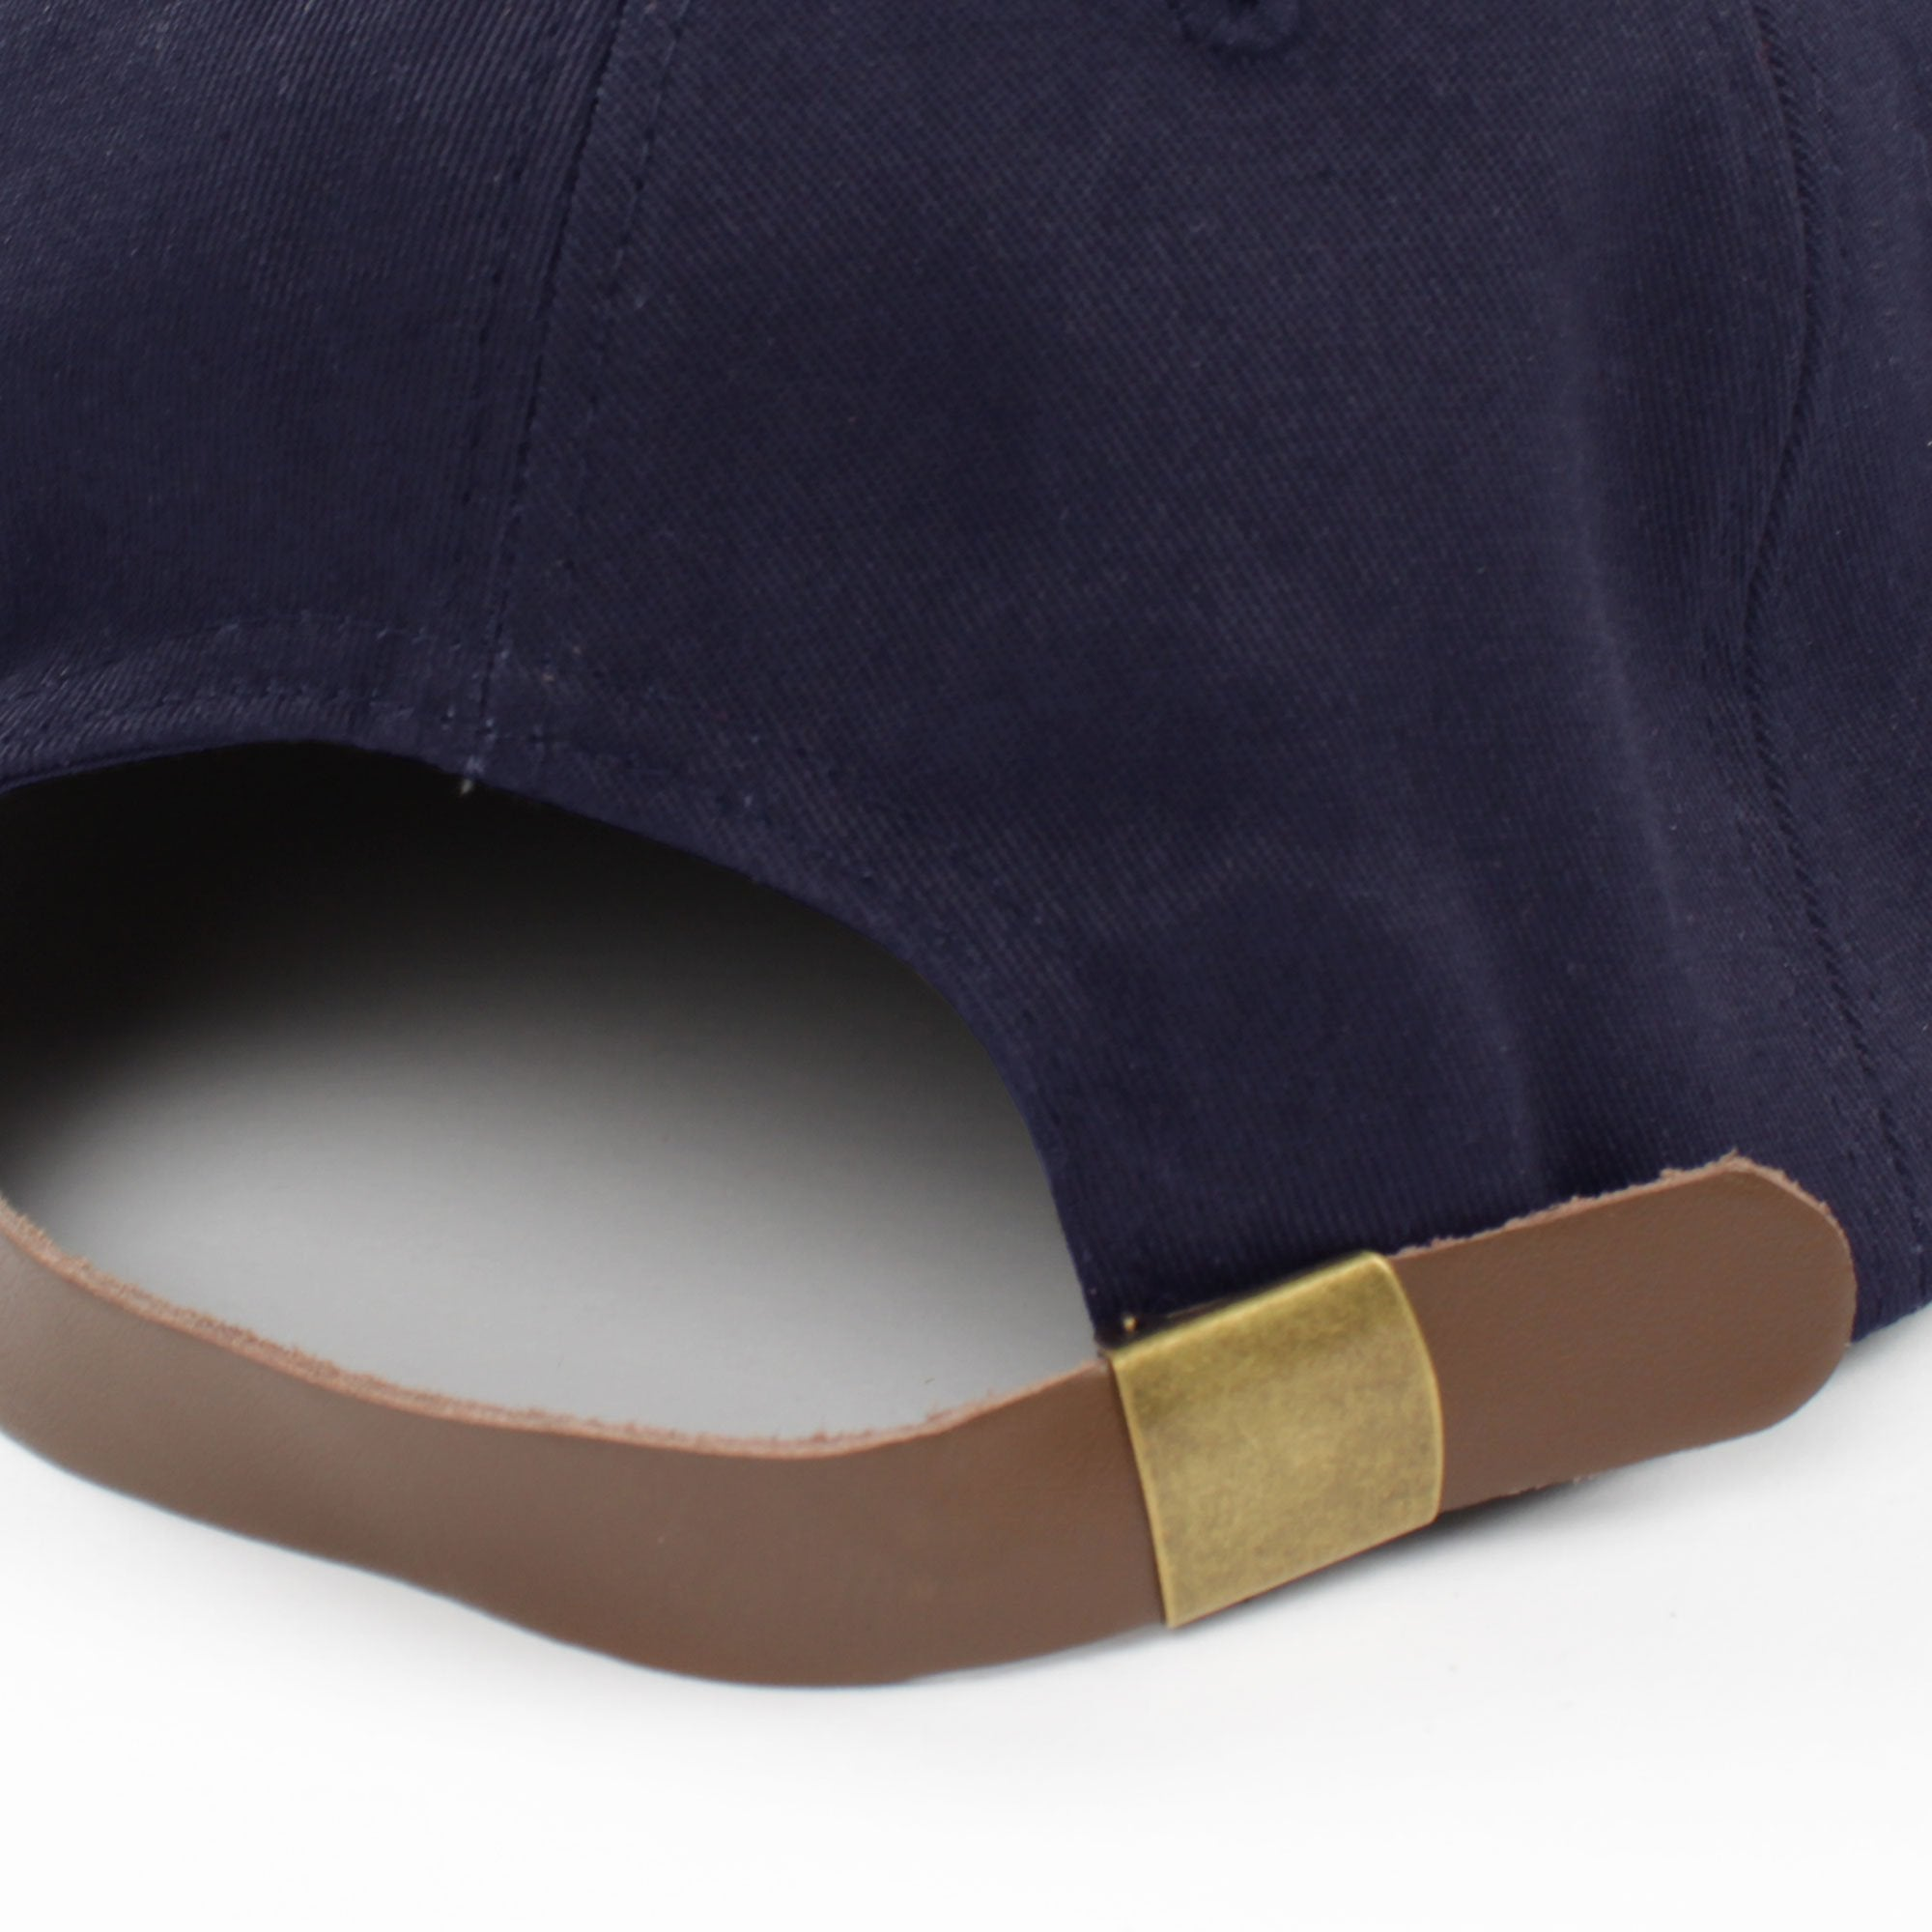 Beyond Ball Cap Product Photo #3